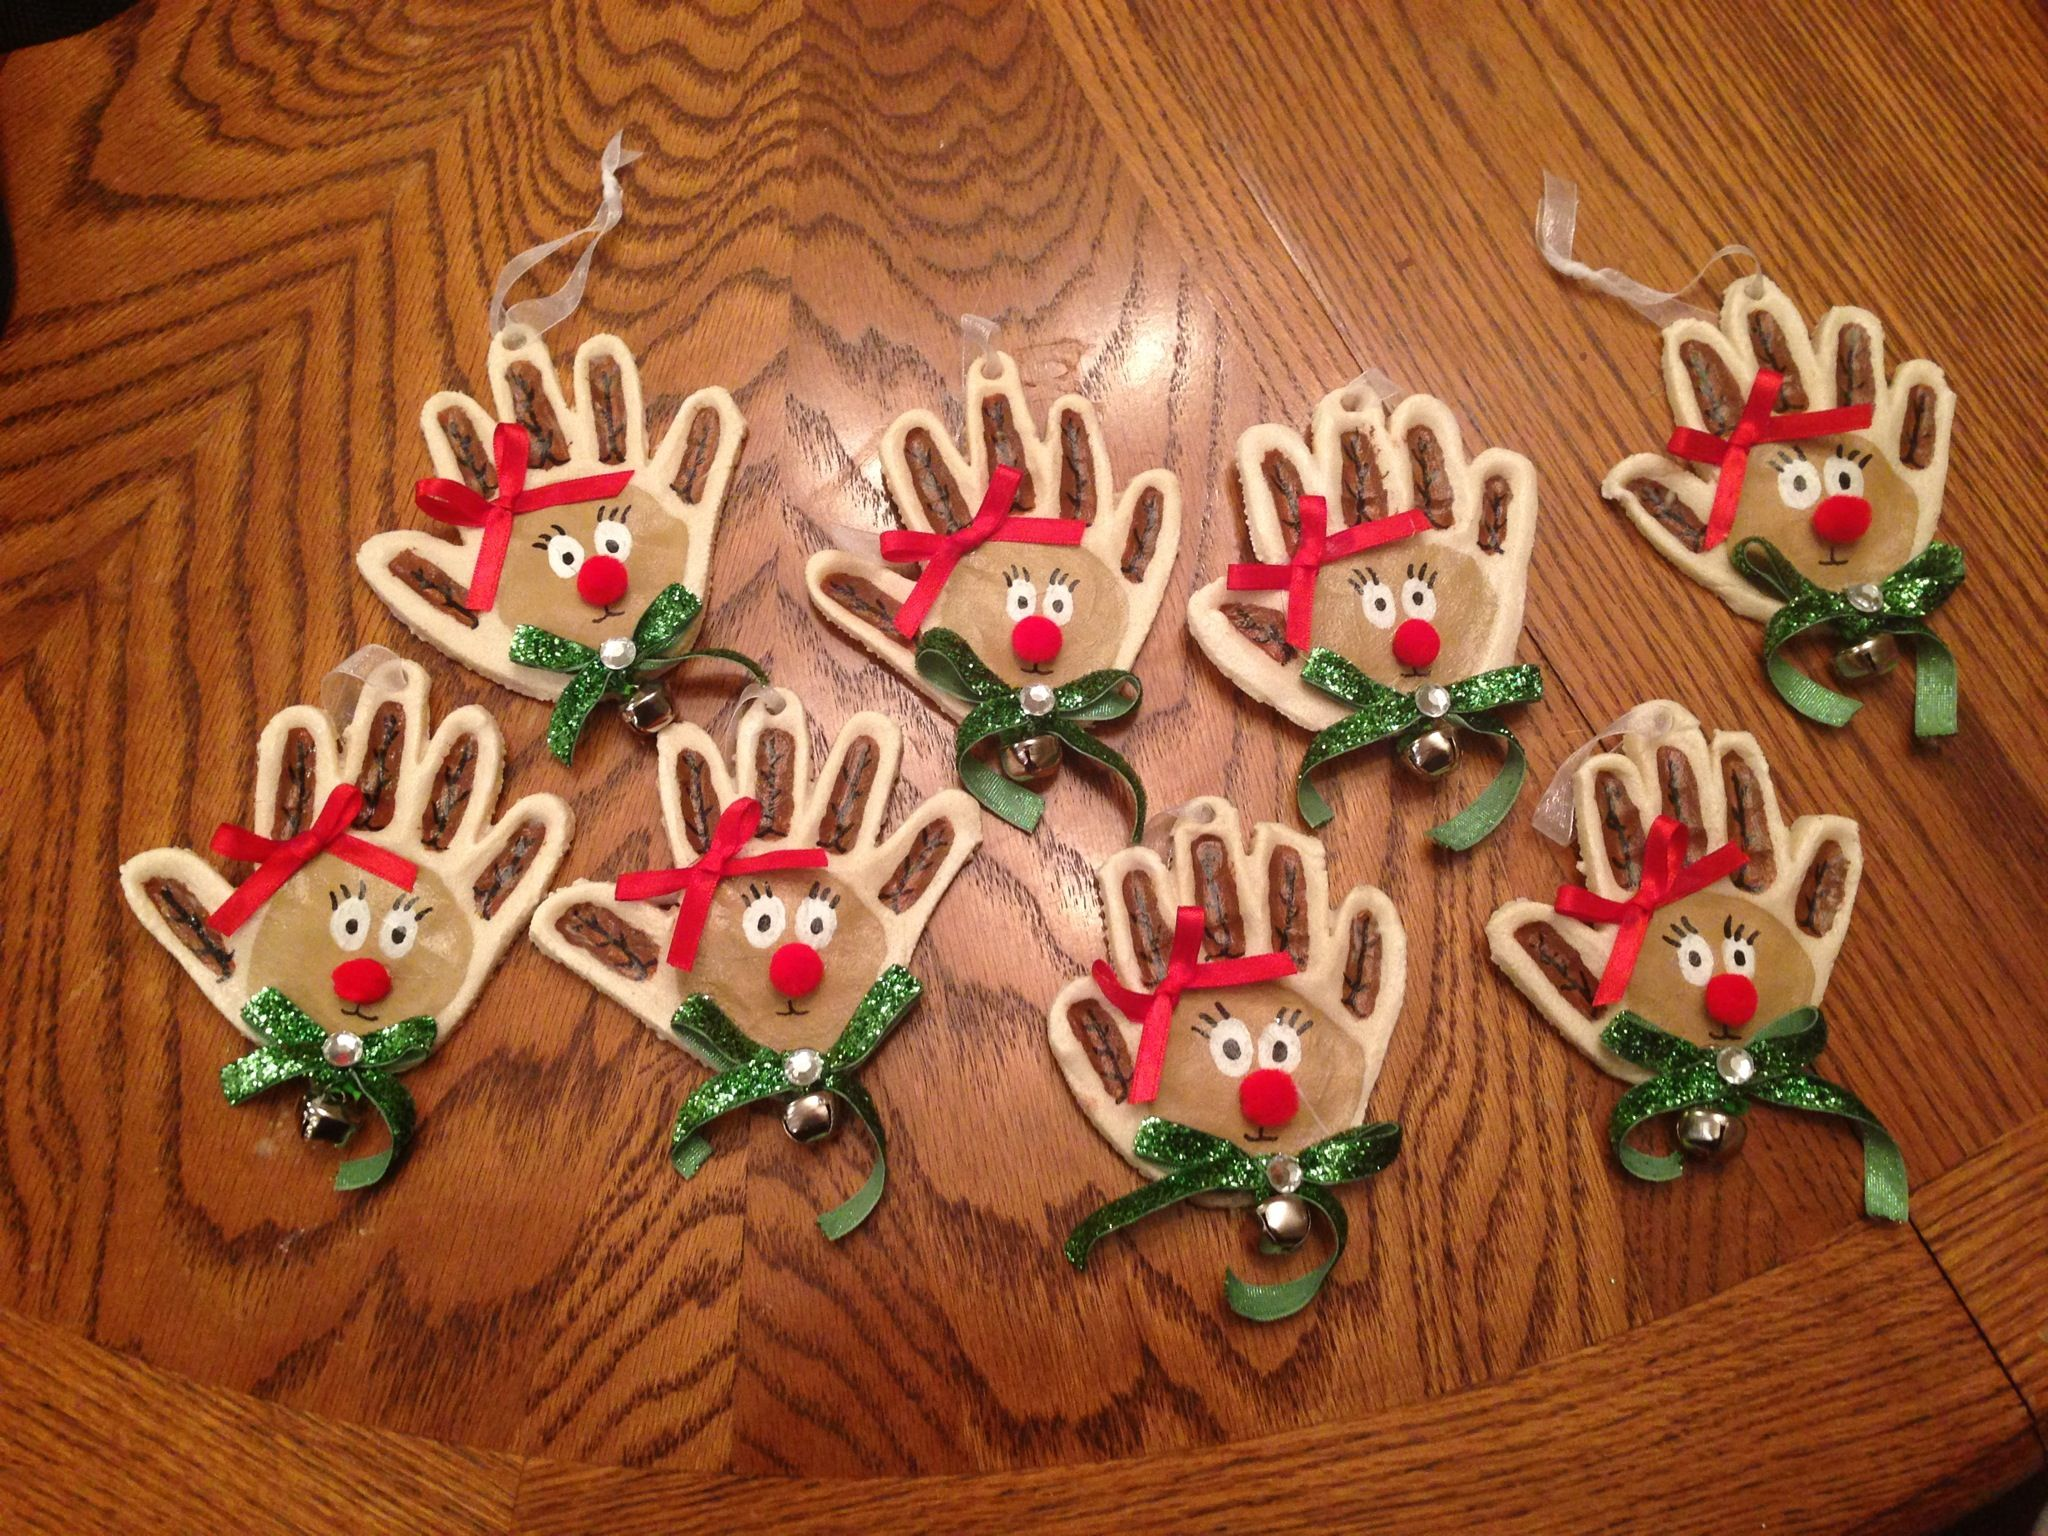 Reindeer Salt Dough Ornaments Sydnee' Crafts